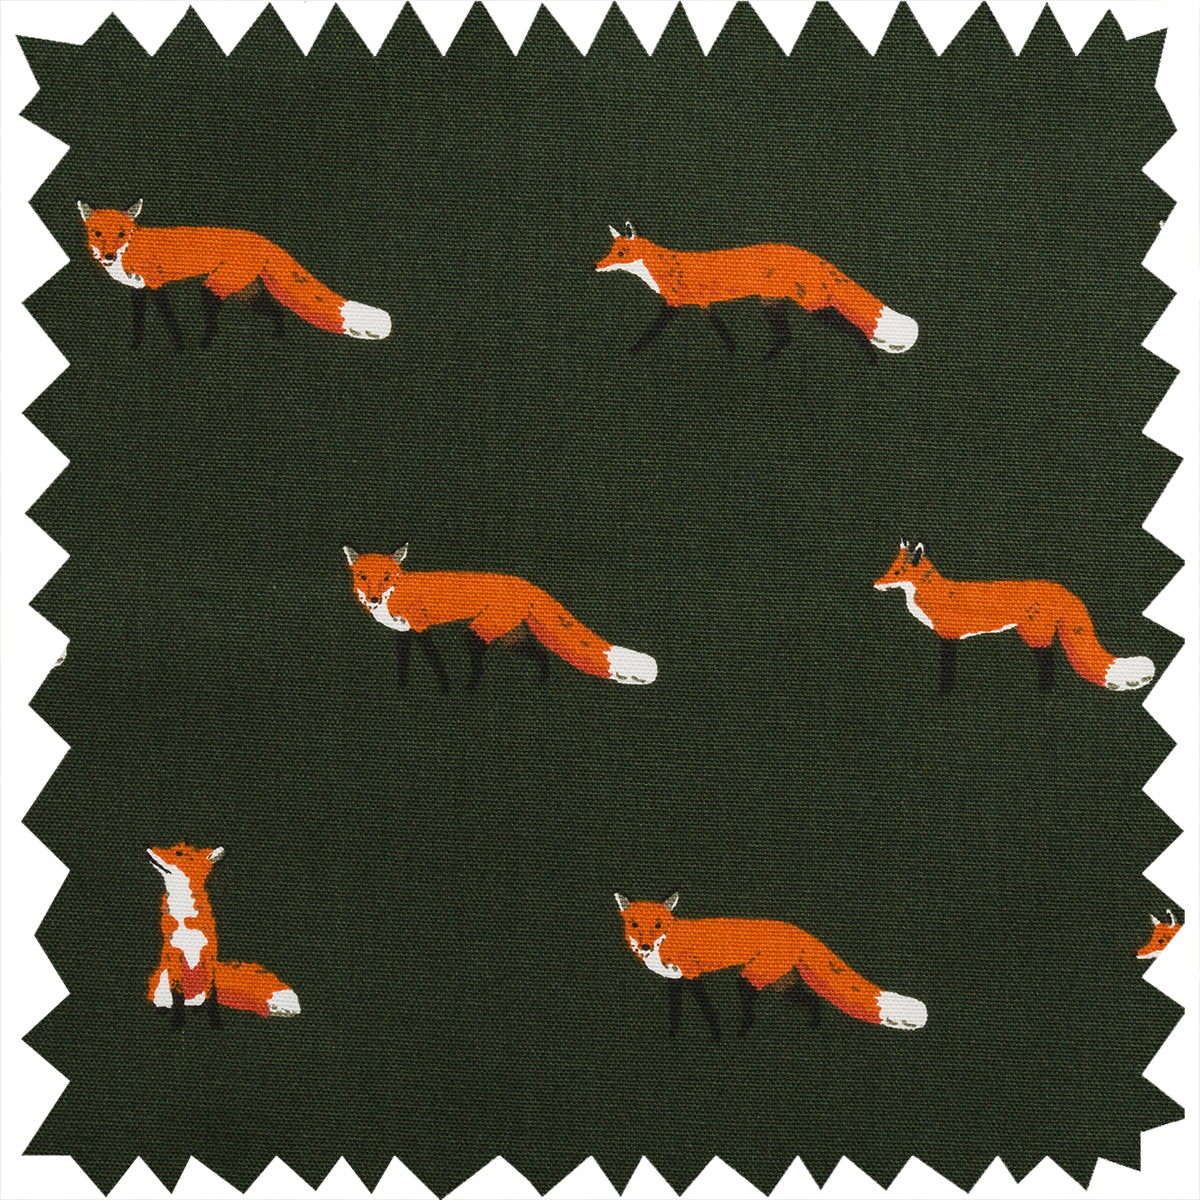 Foxes Fabric by the Metre